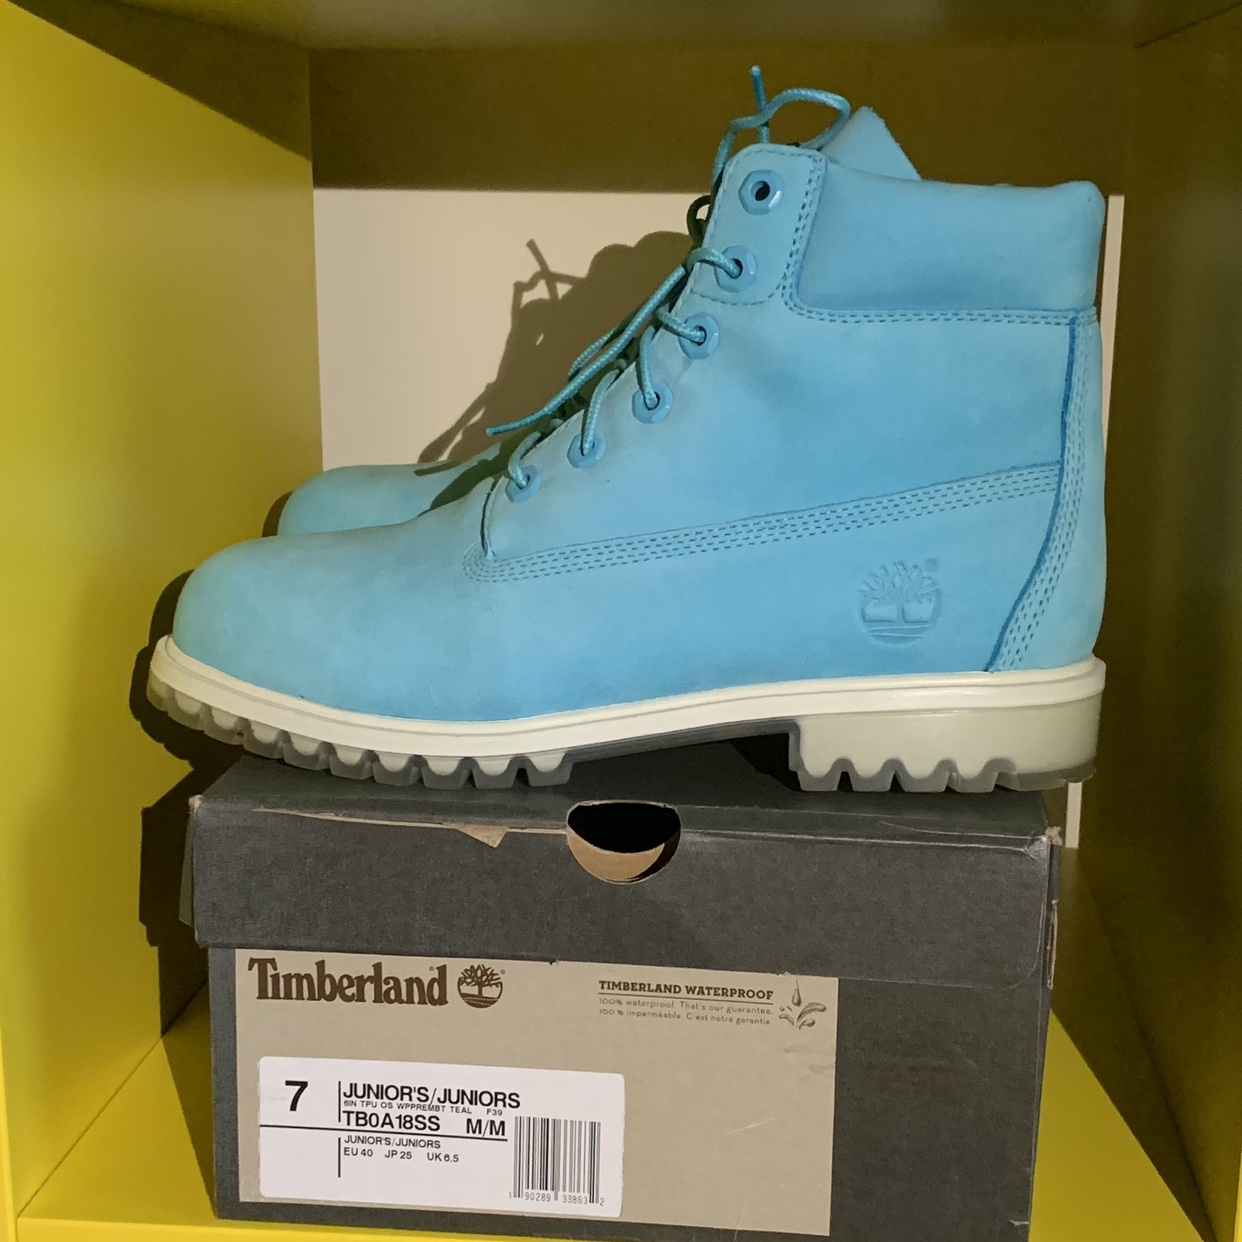 incrementar Asesorar Plano  Timberland boots brought in Holland. Size 6.5 in... - Depop